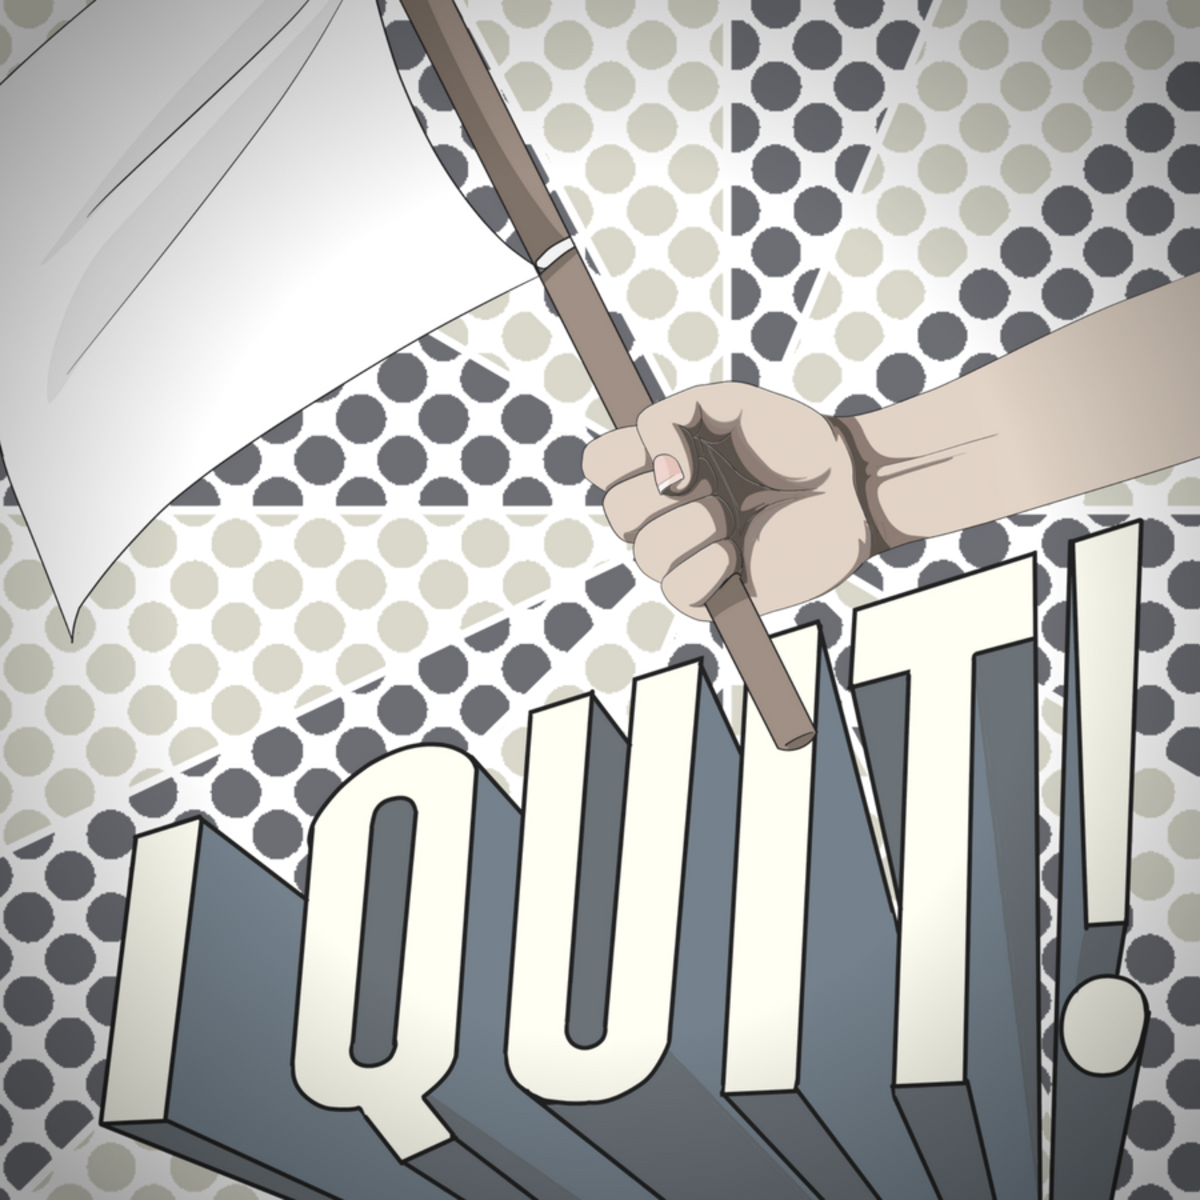 Should you quit your job if you are being bullied?